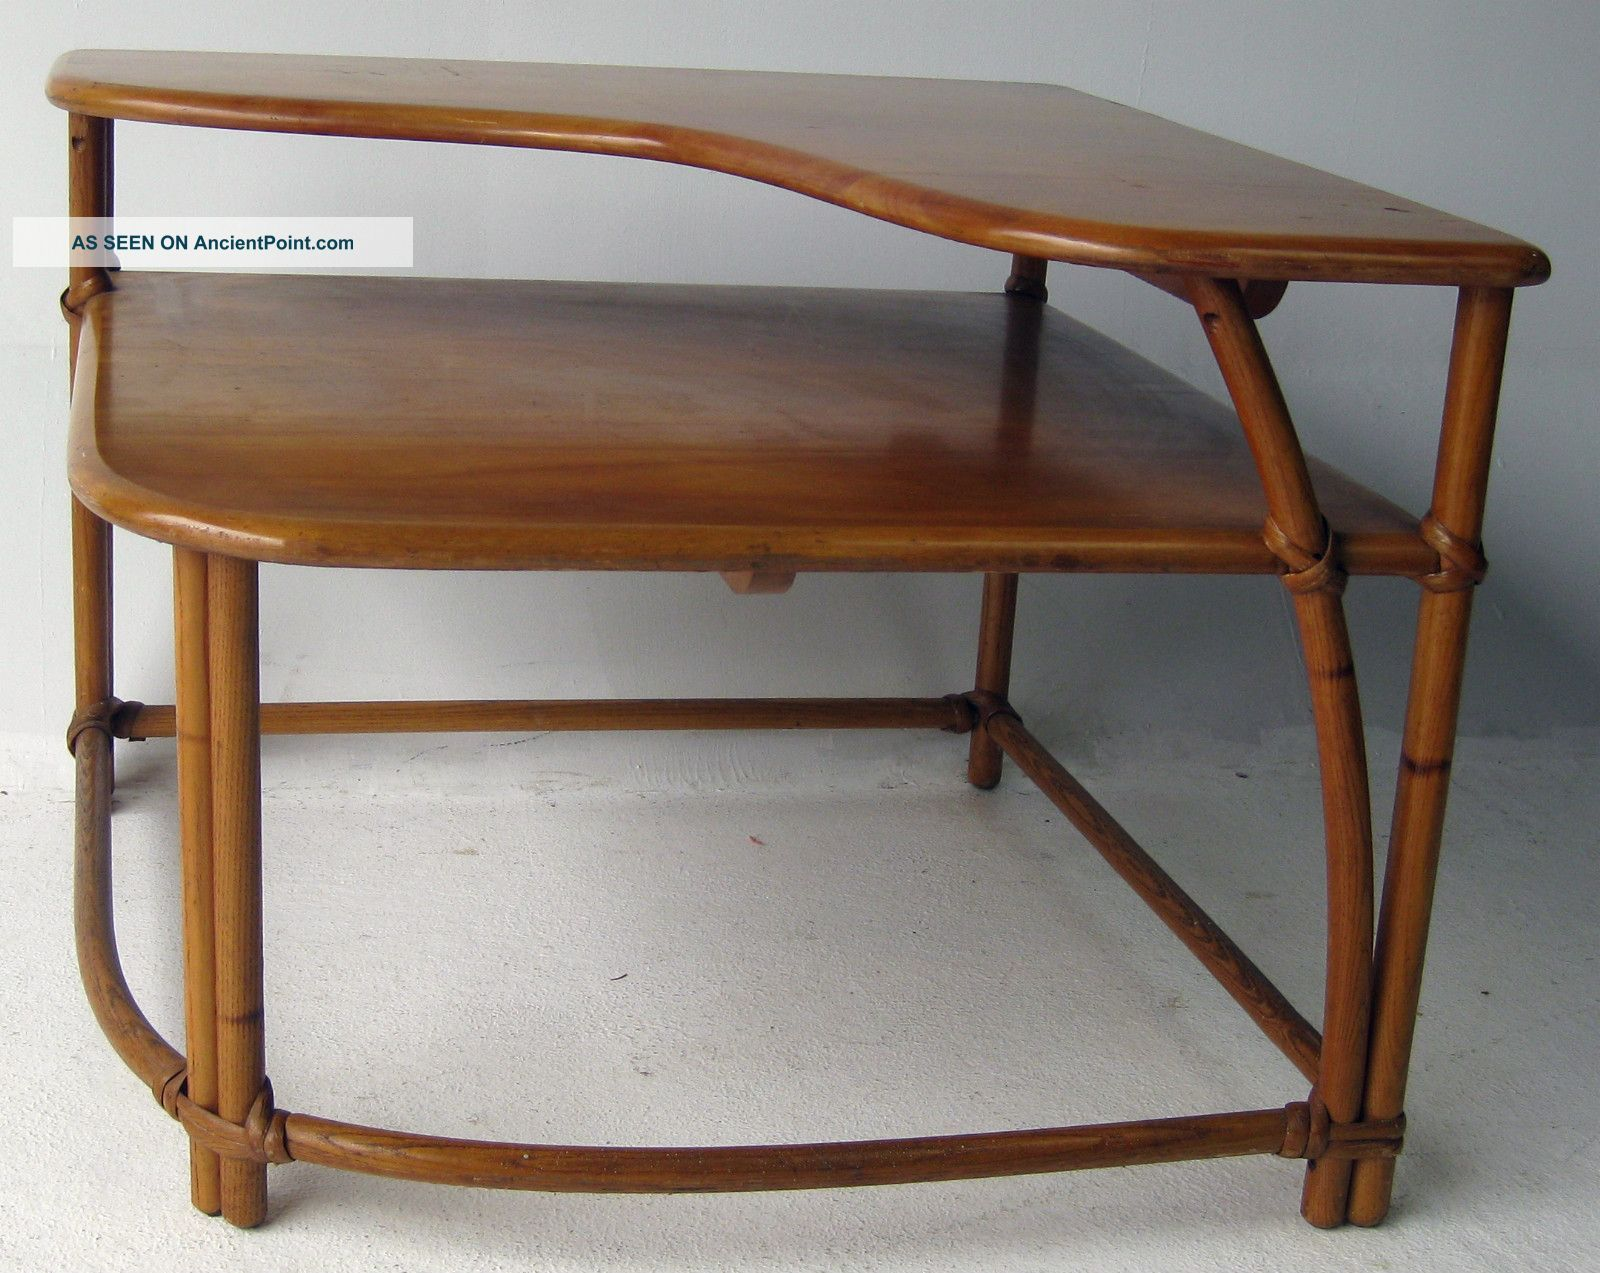 Cool Find This Pin And More On Heywood Wakefield Furniture Fav Pieces With Heywood  Wakefield Table